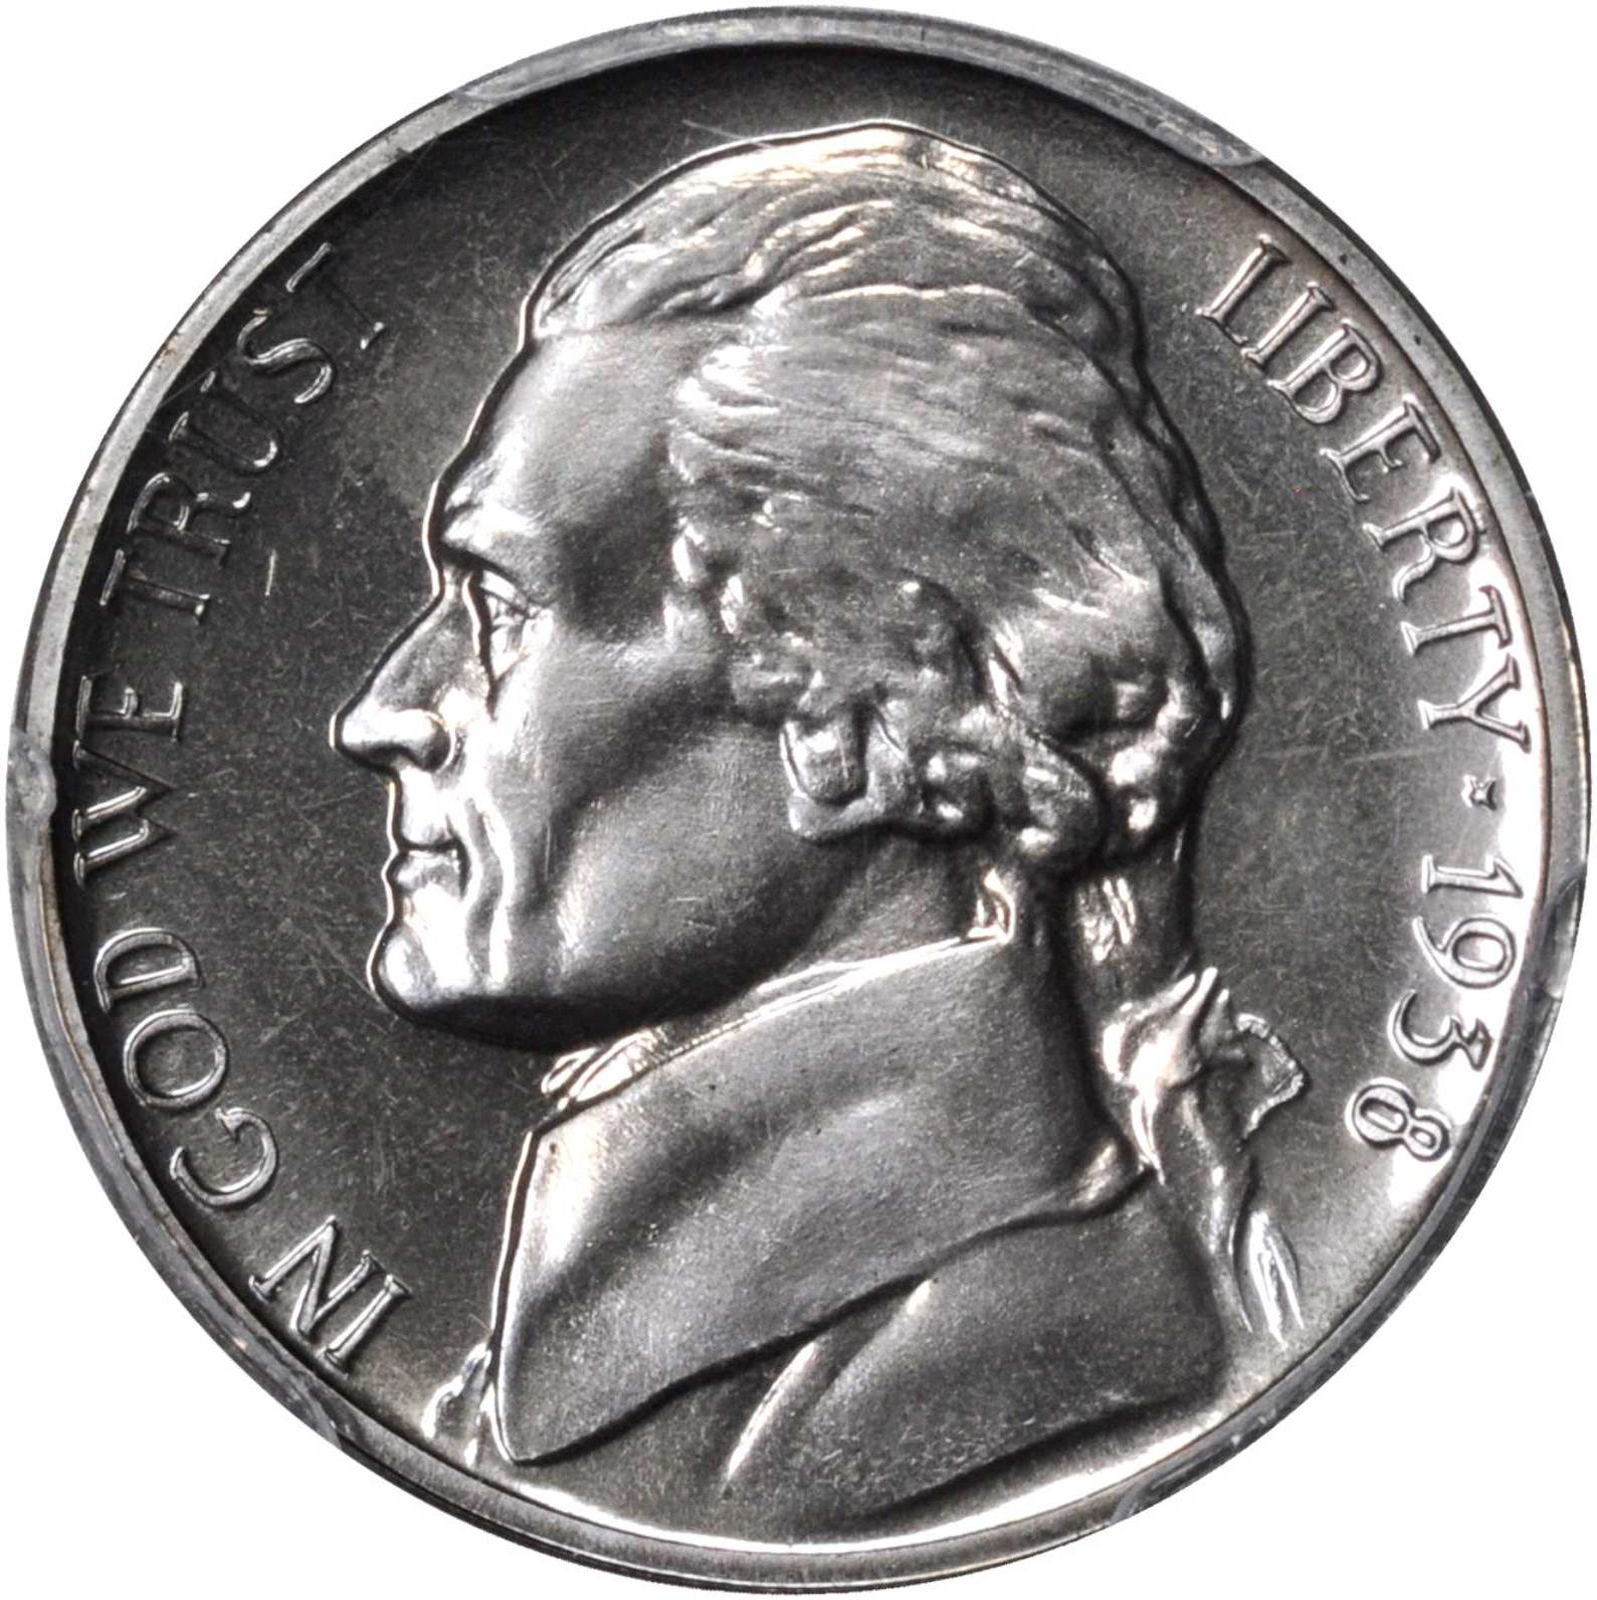 who is on the nickel coin